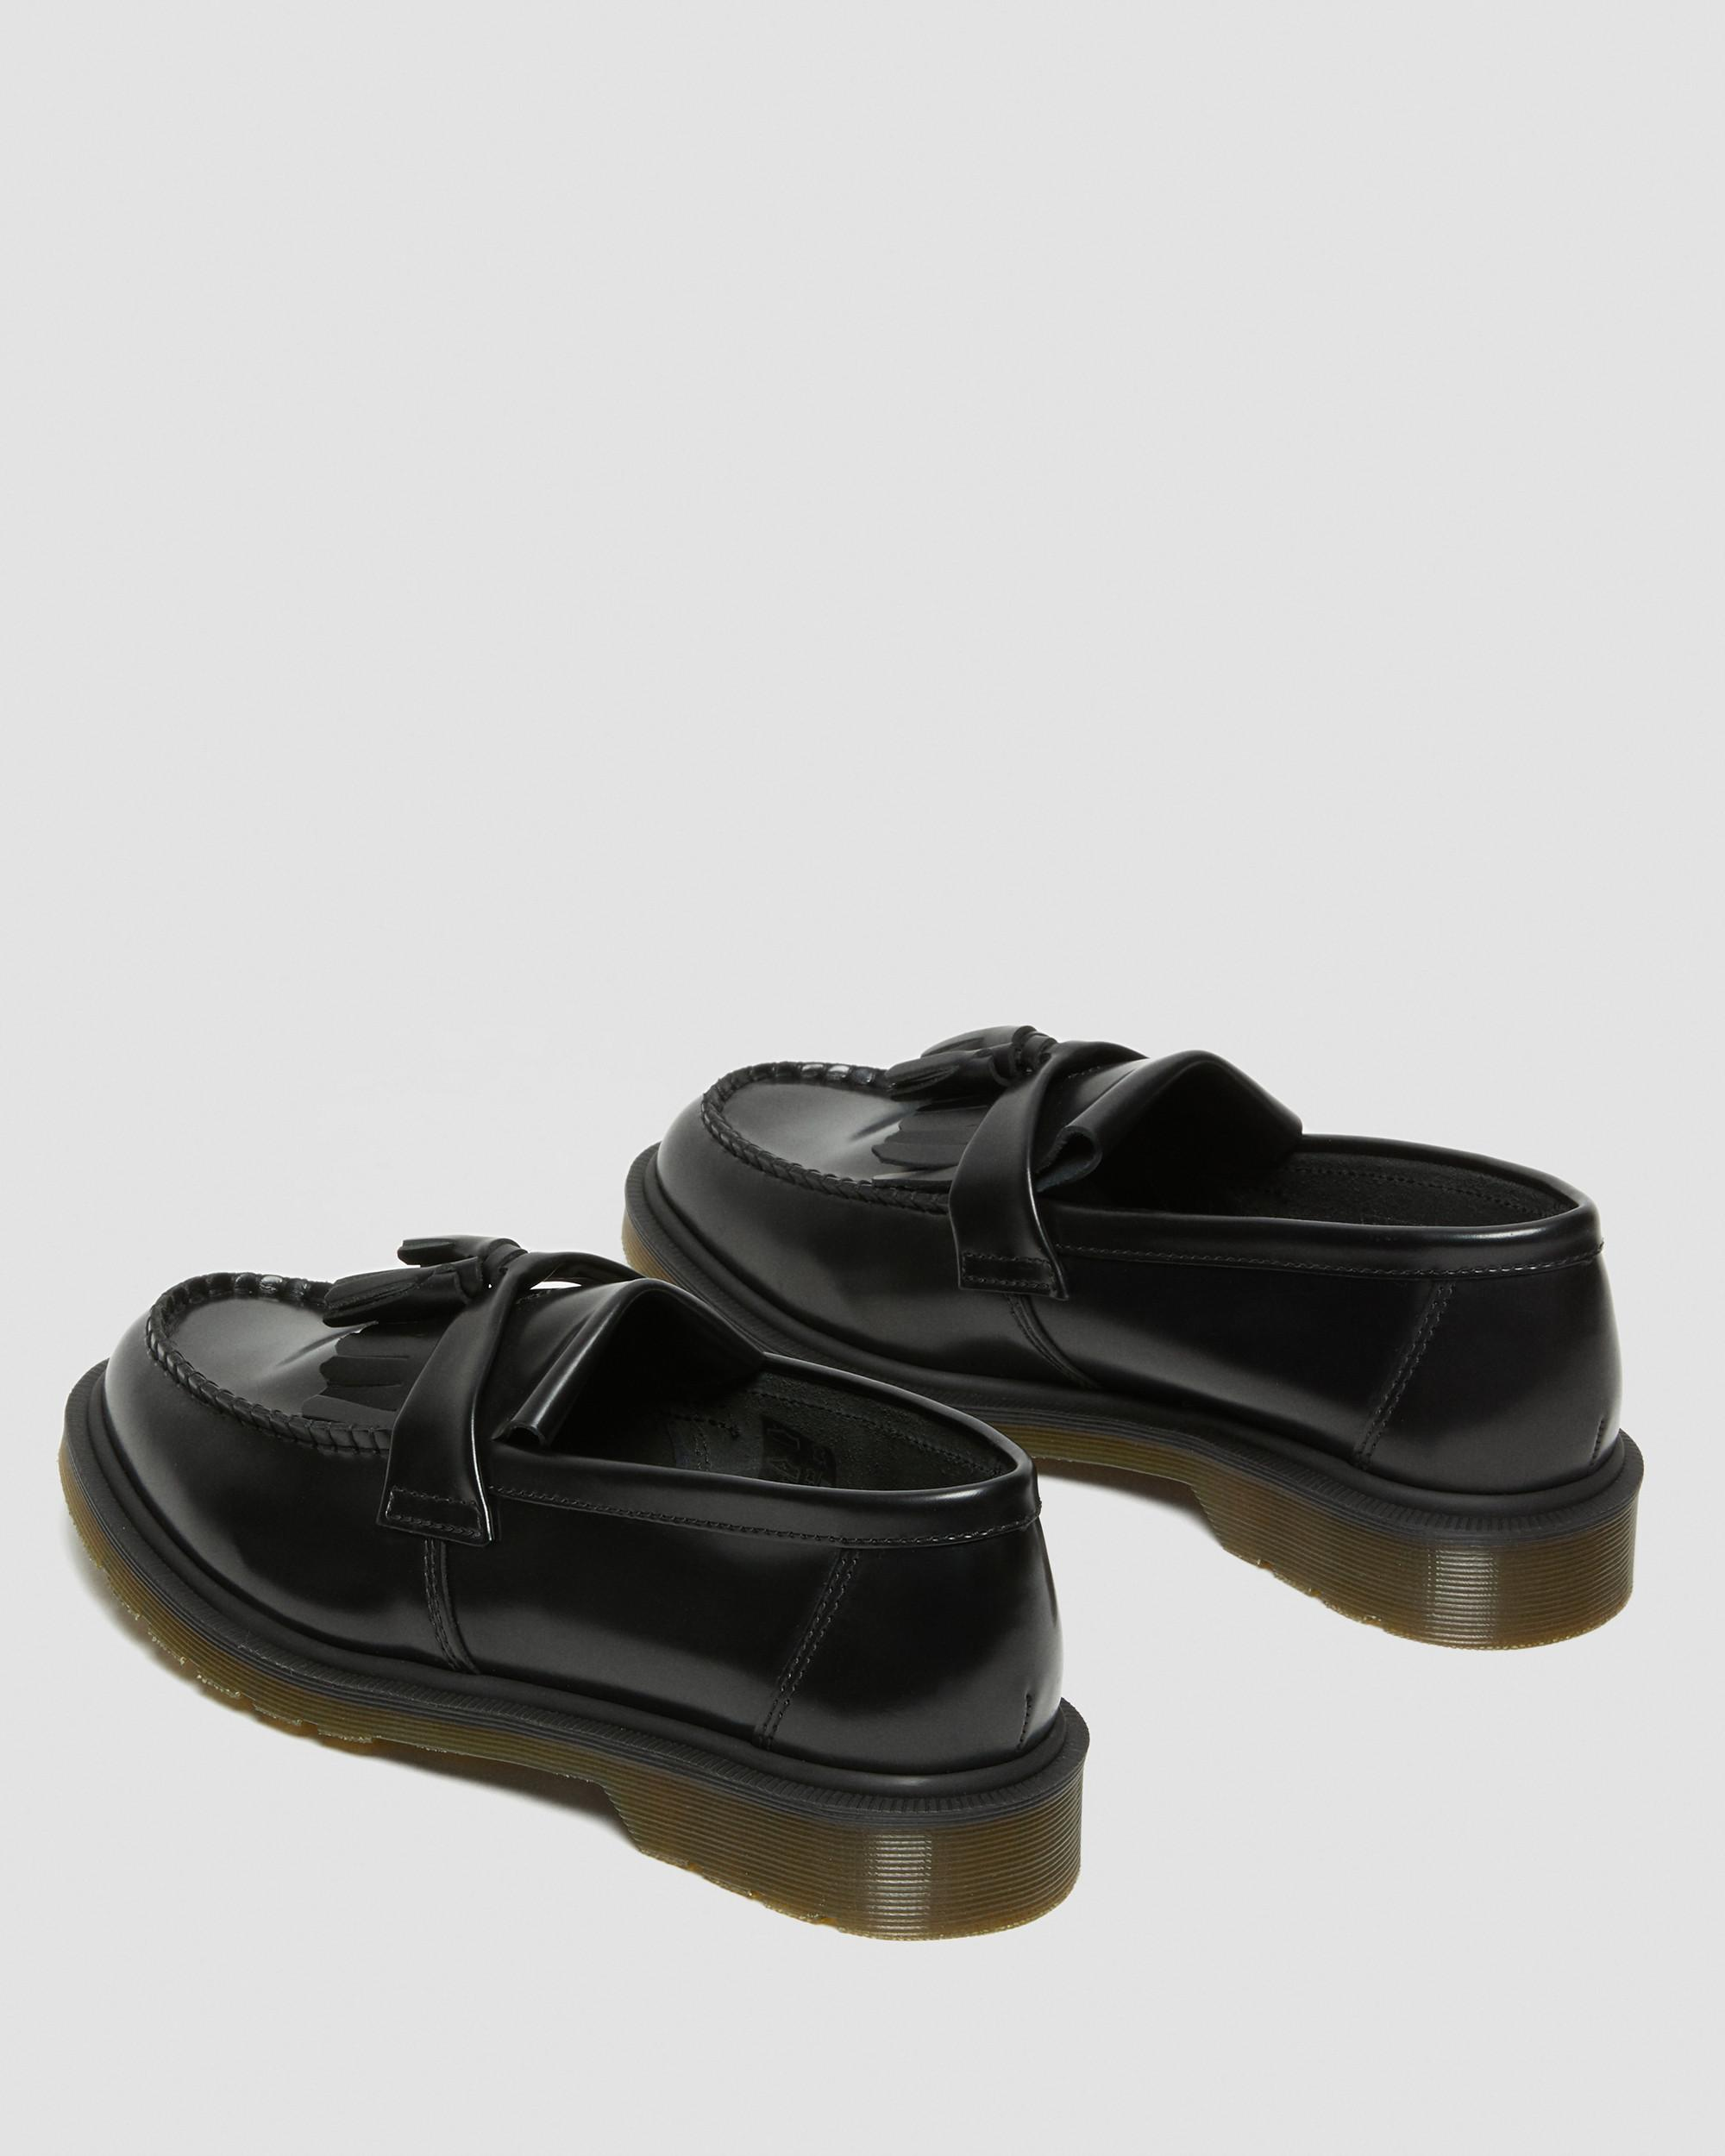 Dr martens adrian smooth leather tassle loafers | Urban